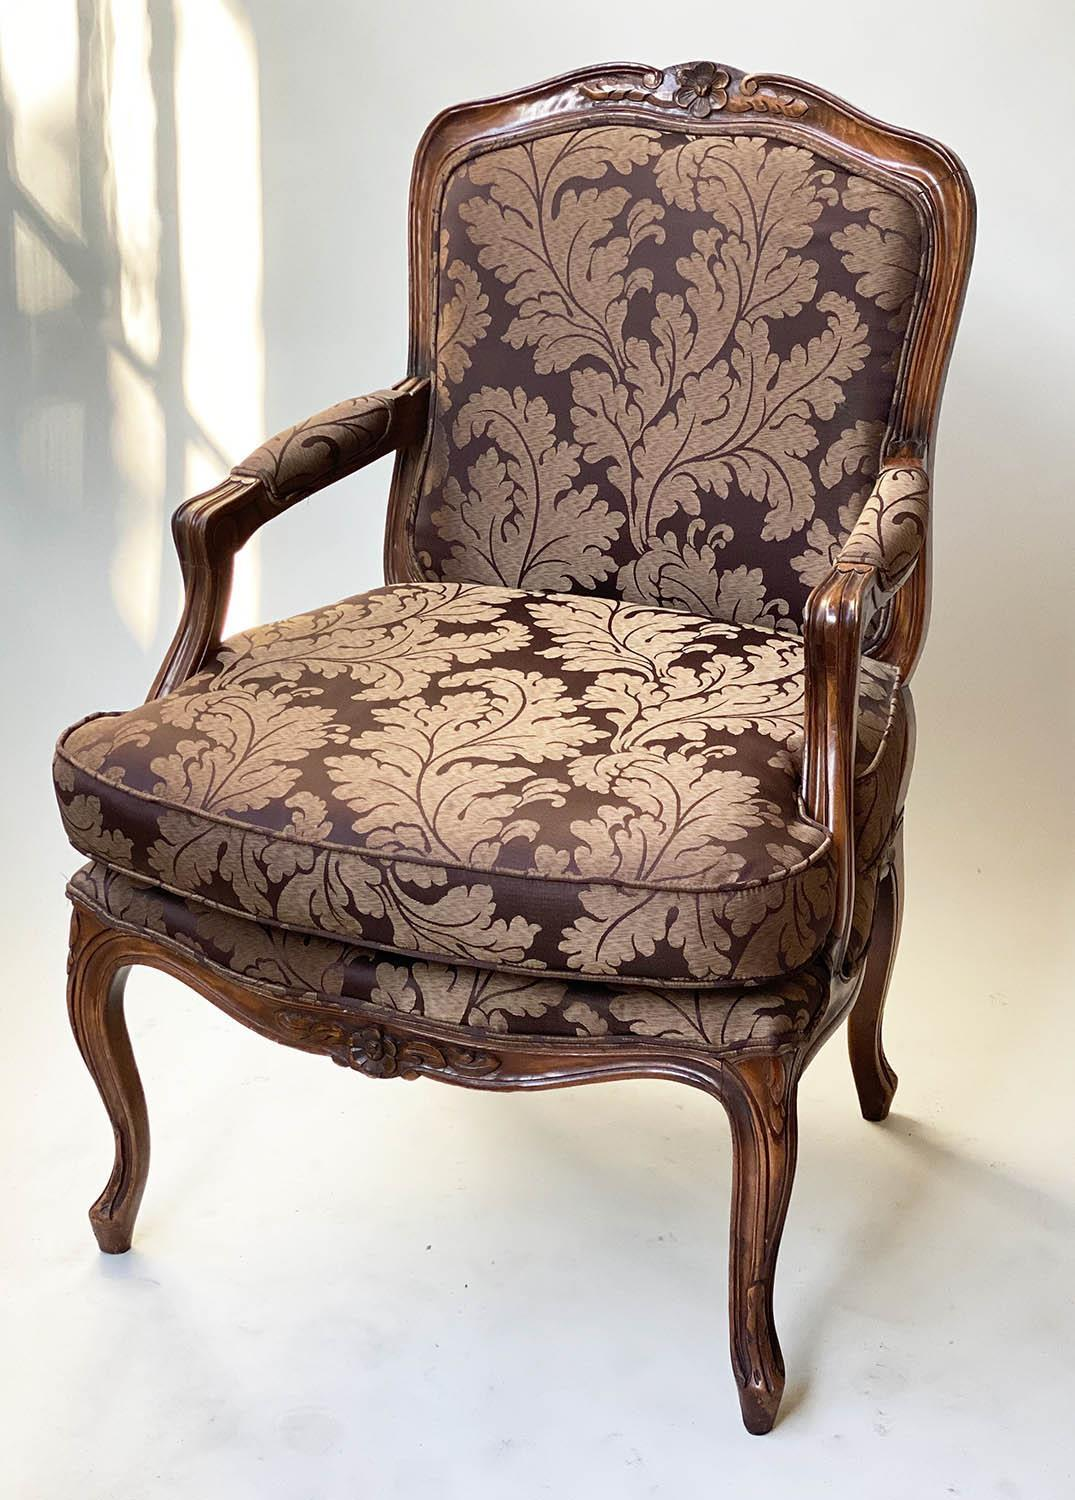 FAUTEUILS, a pair, French Louis XV style, stained walnut, with two tone brown leaf silk - Image 8 of 9